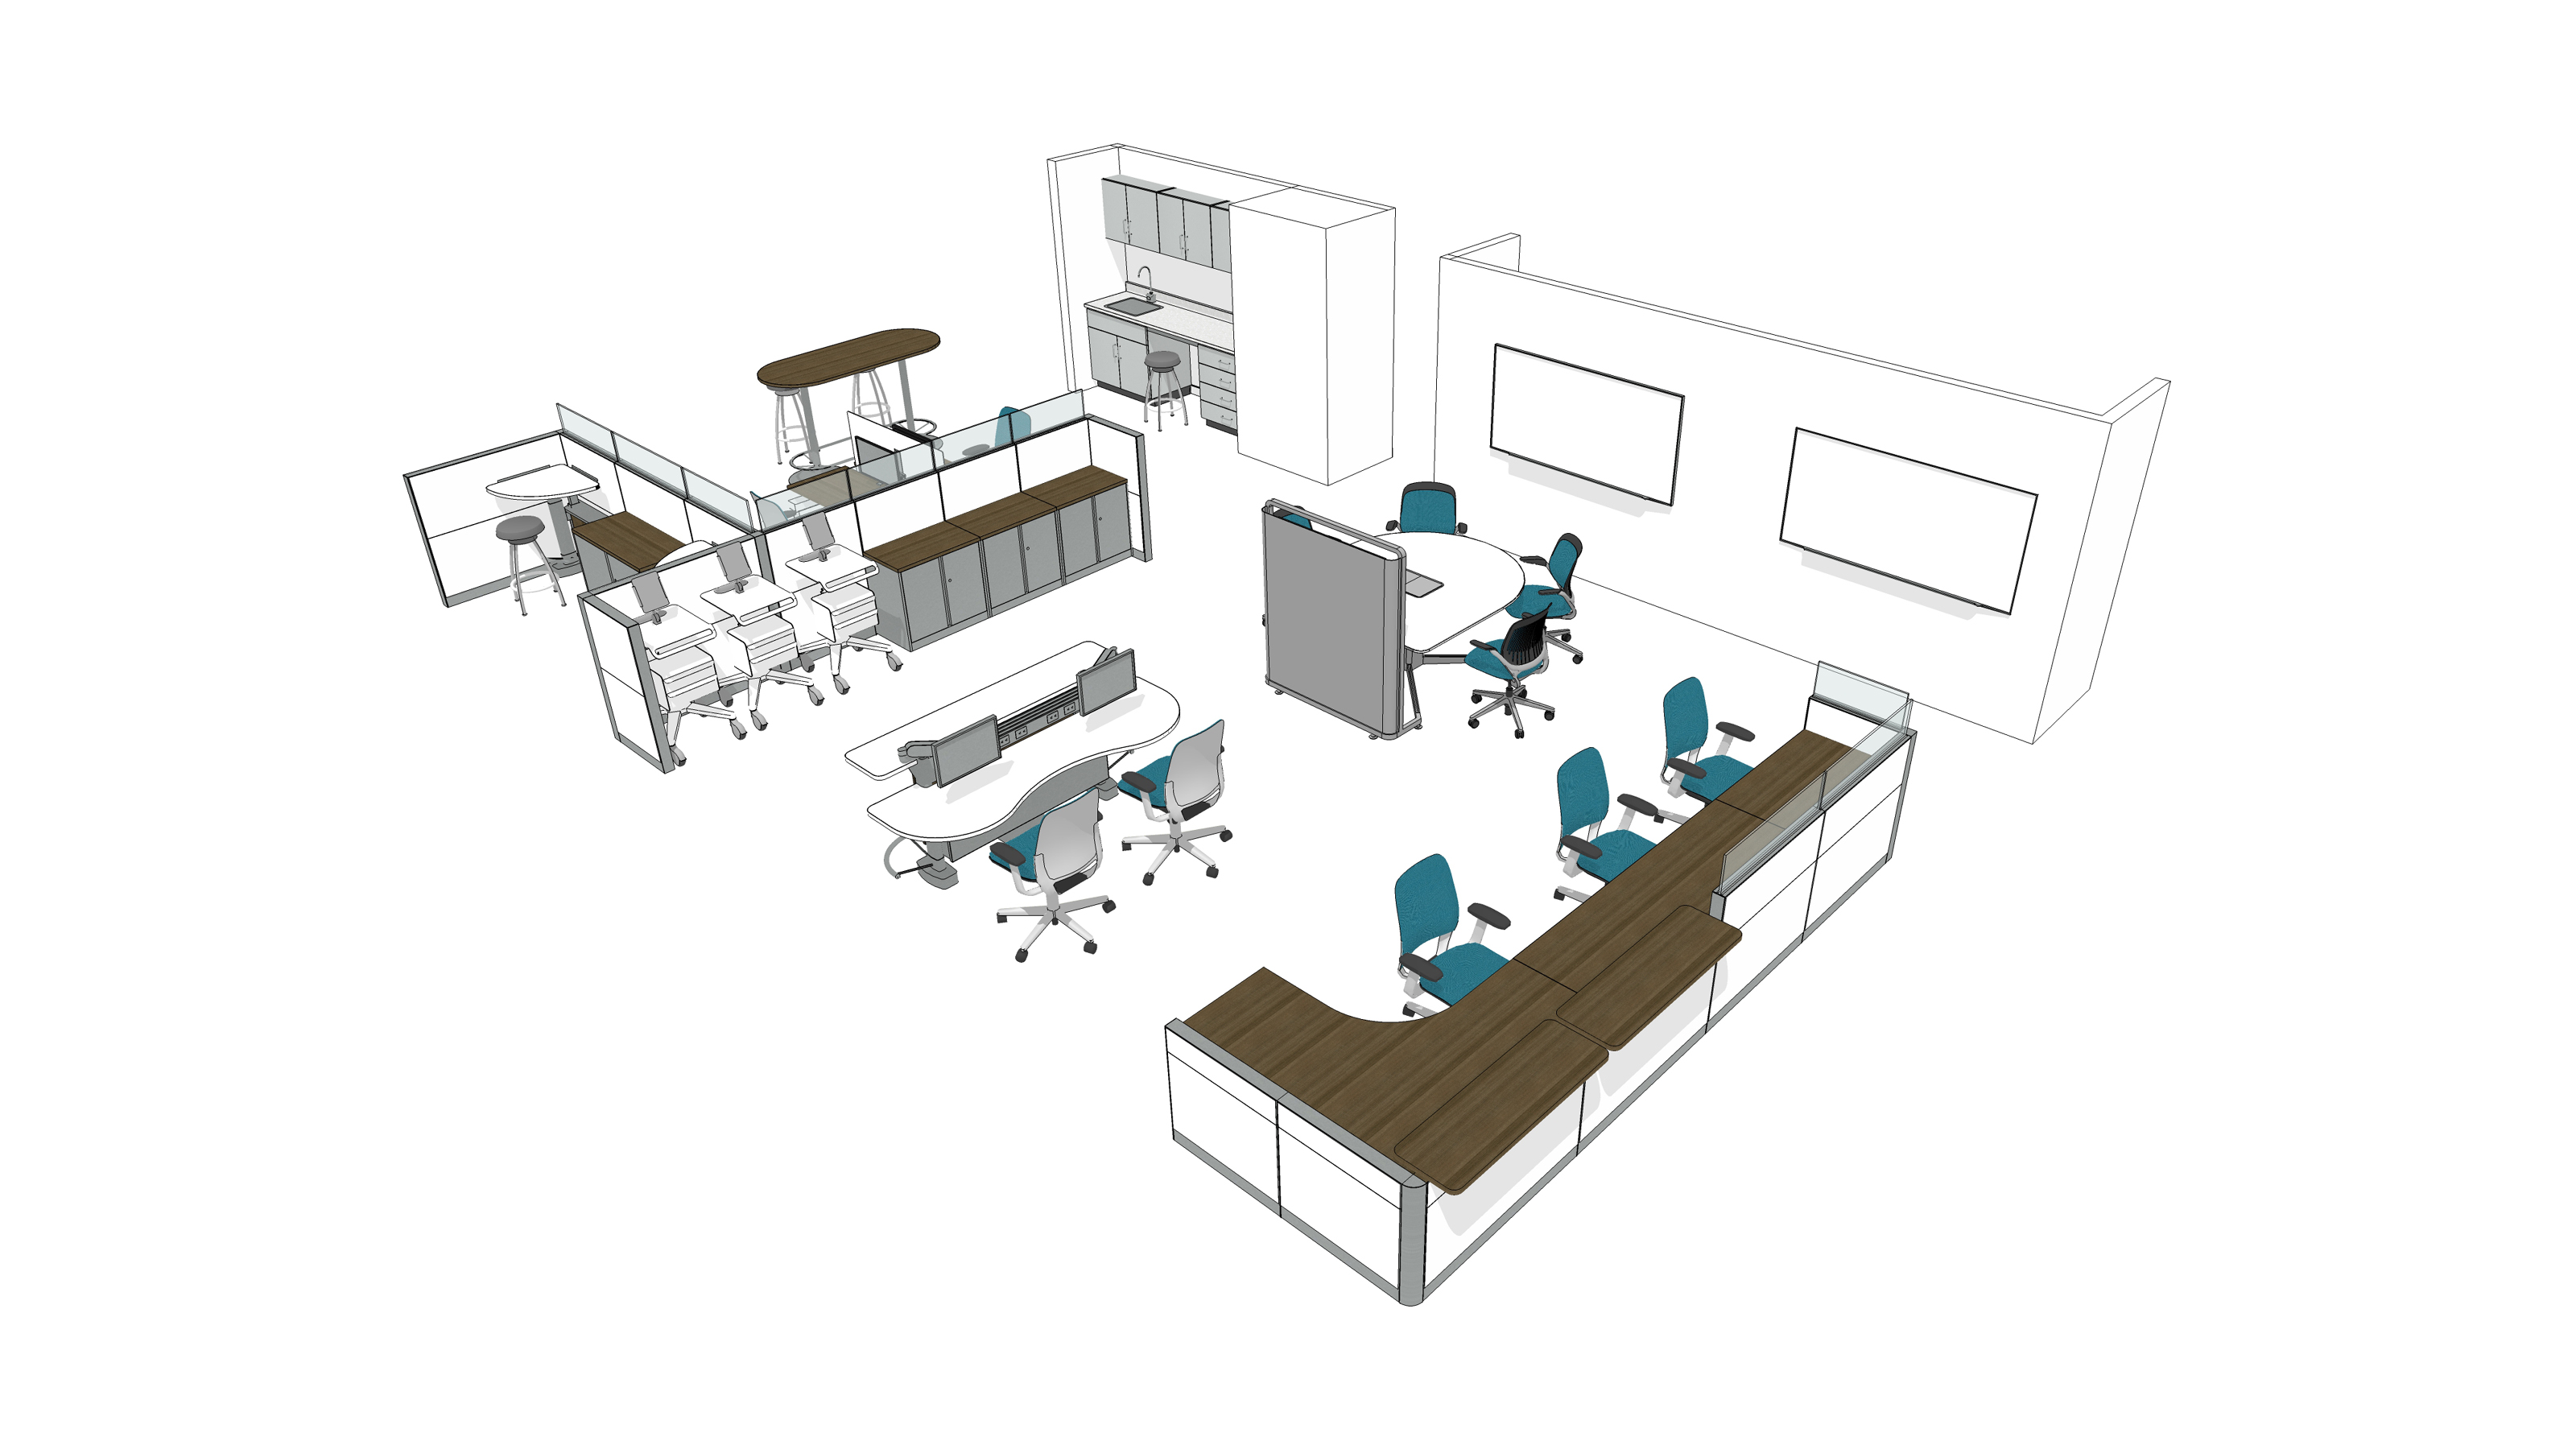 WS9HM8NF montage office workstation & panel systems steelcase  at panicattacktreatment.co